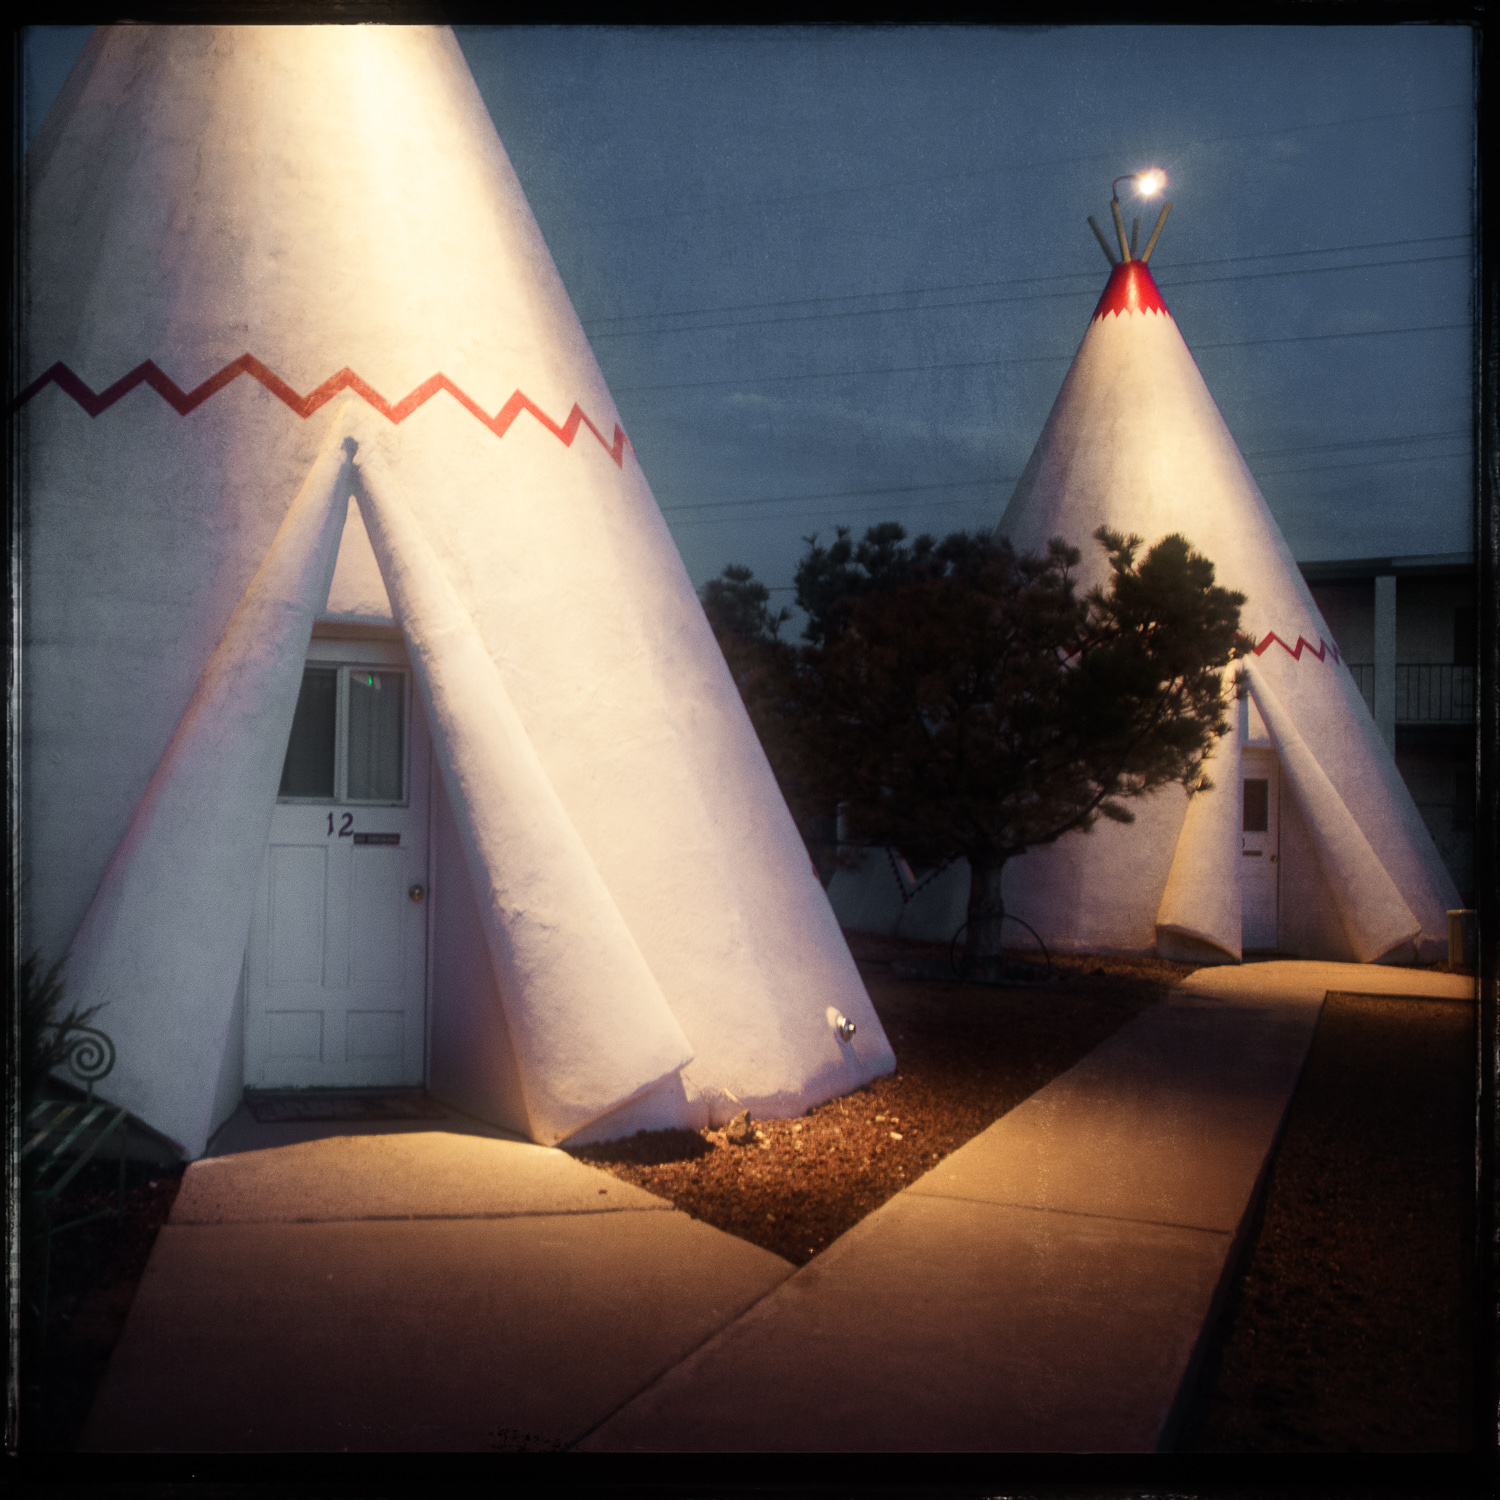 Holbrook AZWigwam Motel #6 - Village #6 of 8 developed by Frank A. Redford. Still in the hands of the original owners The Lewis family. Fantastic photo ops with the vintage car collection that is parked around this historic property. If you haven't slept in a wigwam, don't you think it's time?-David Schwartz811 West Hopi Dr.(928) 524 3048 Website